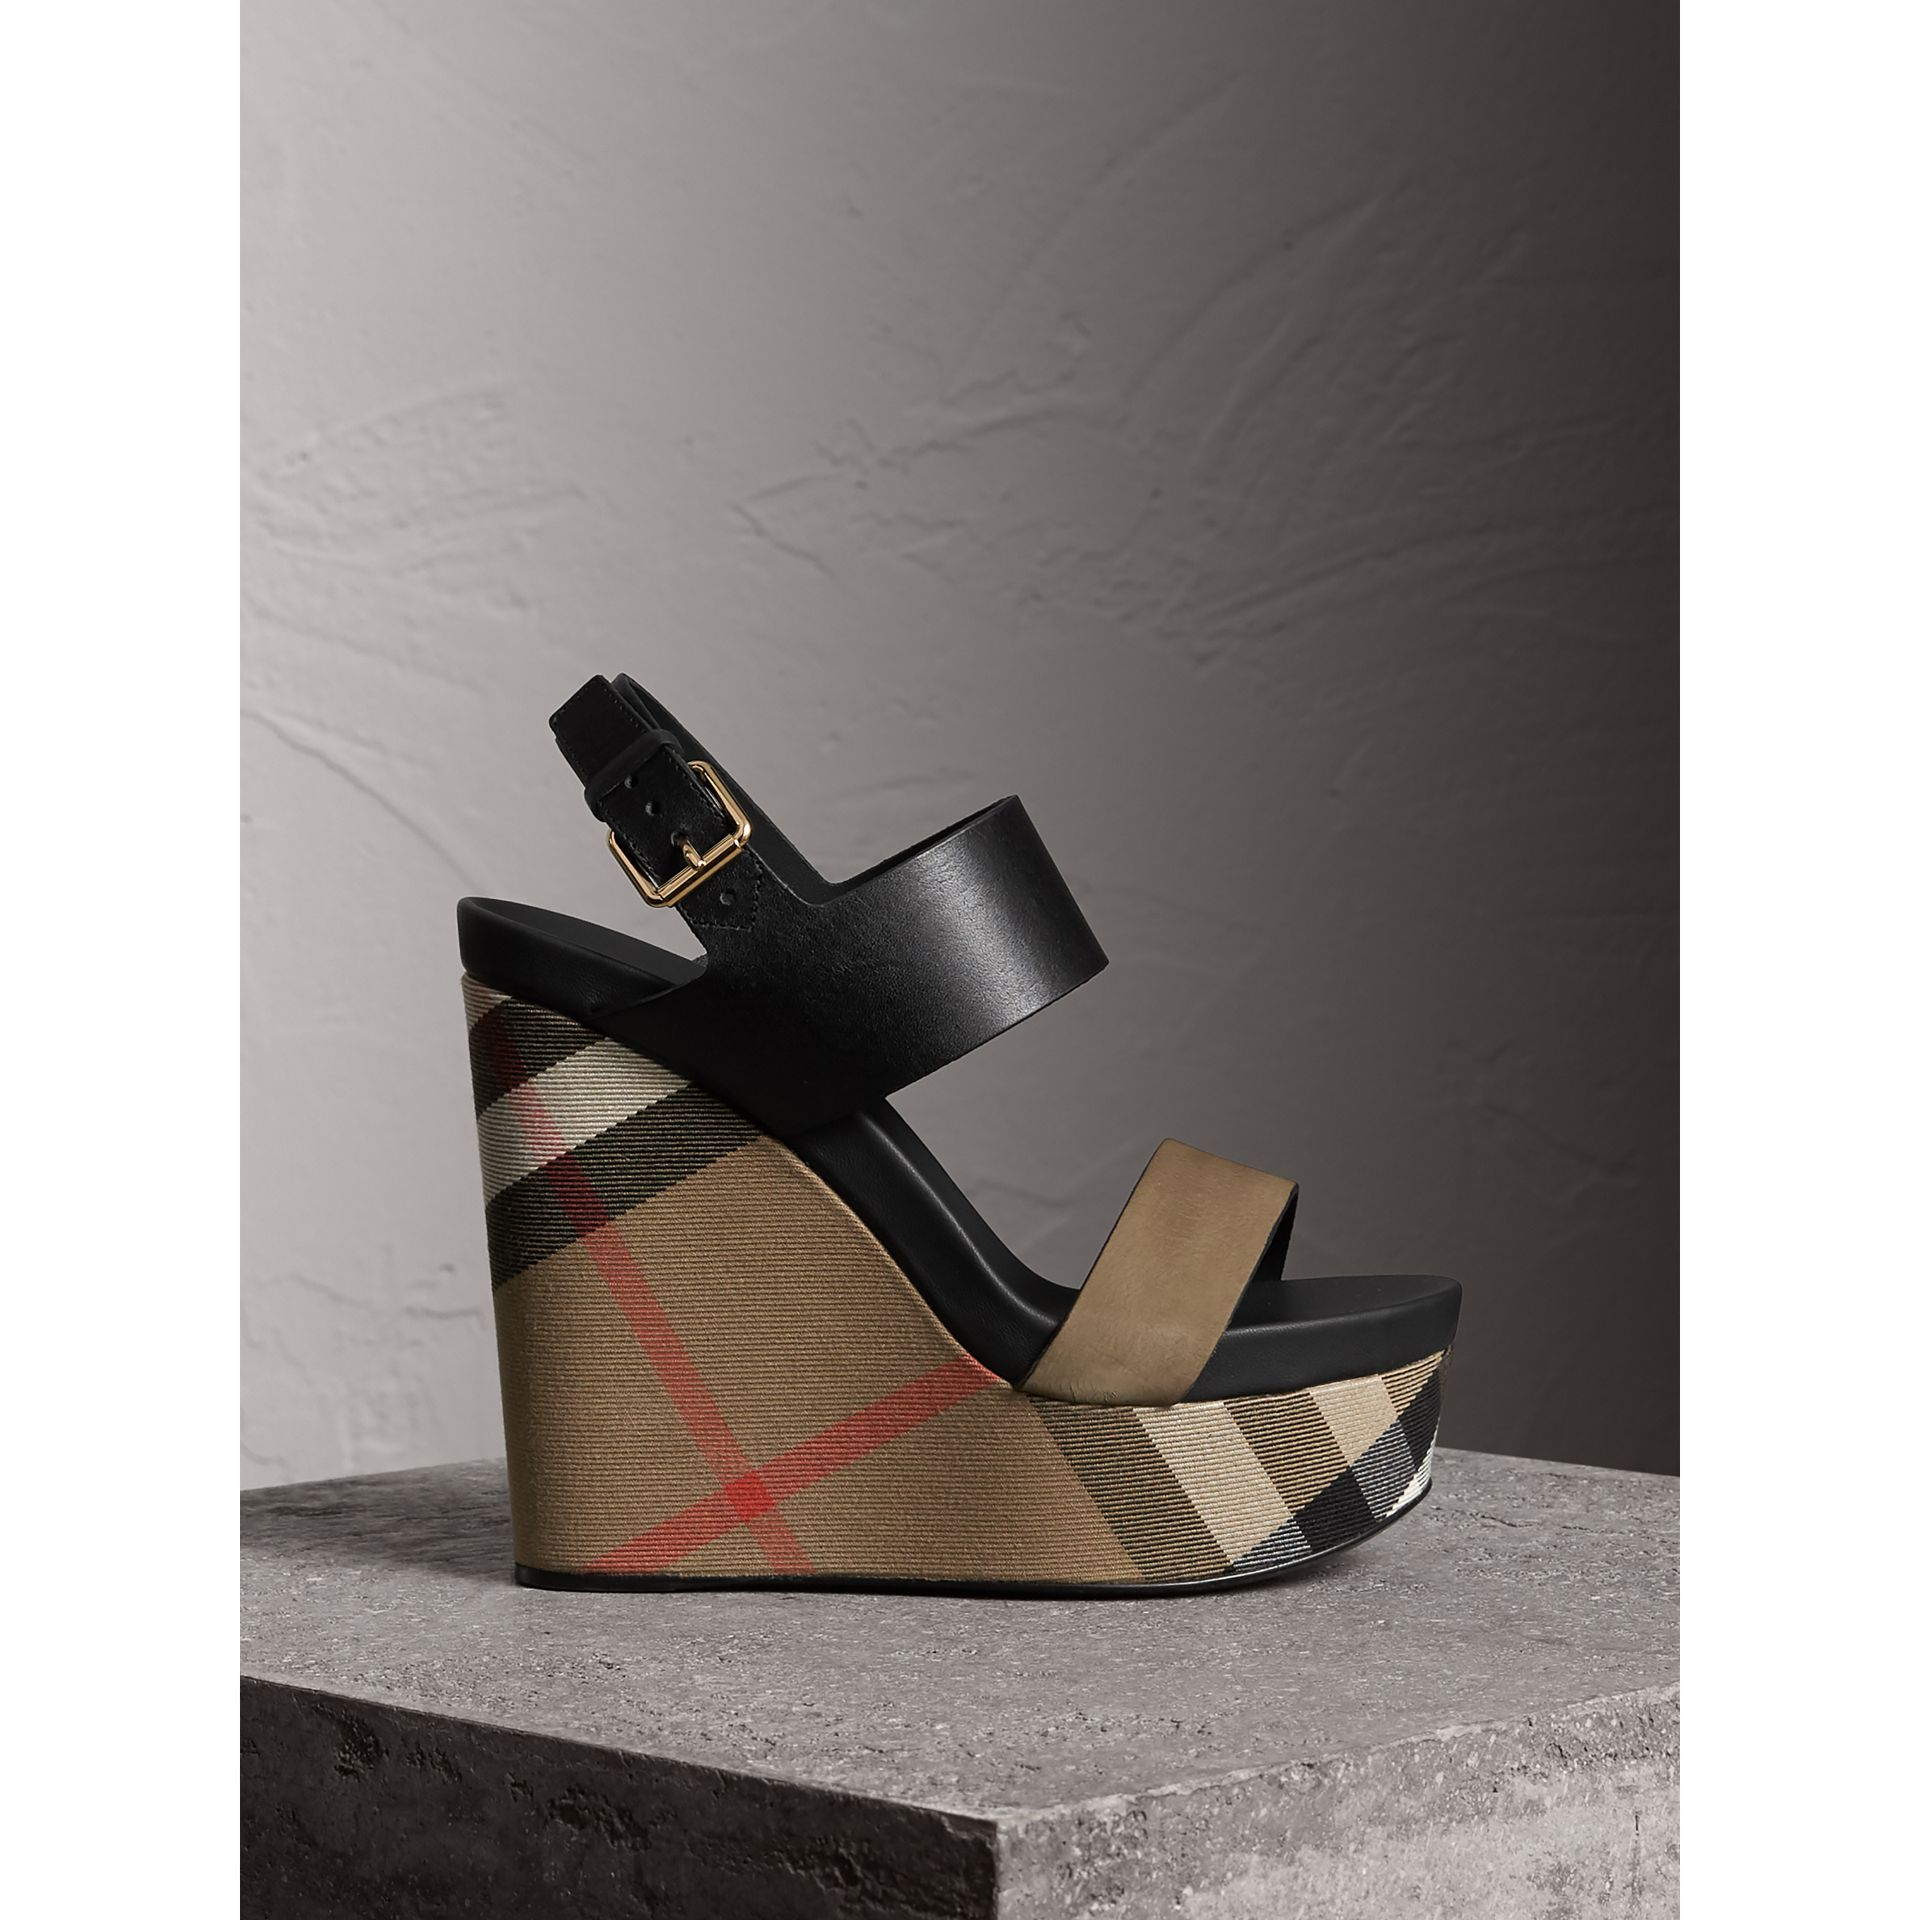 House Check Leather and Calf Suede Platform Wedges in Dark Heather Melange - Women | Burberry Australia - gallery image 1